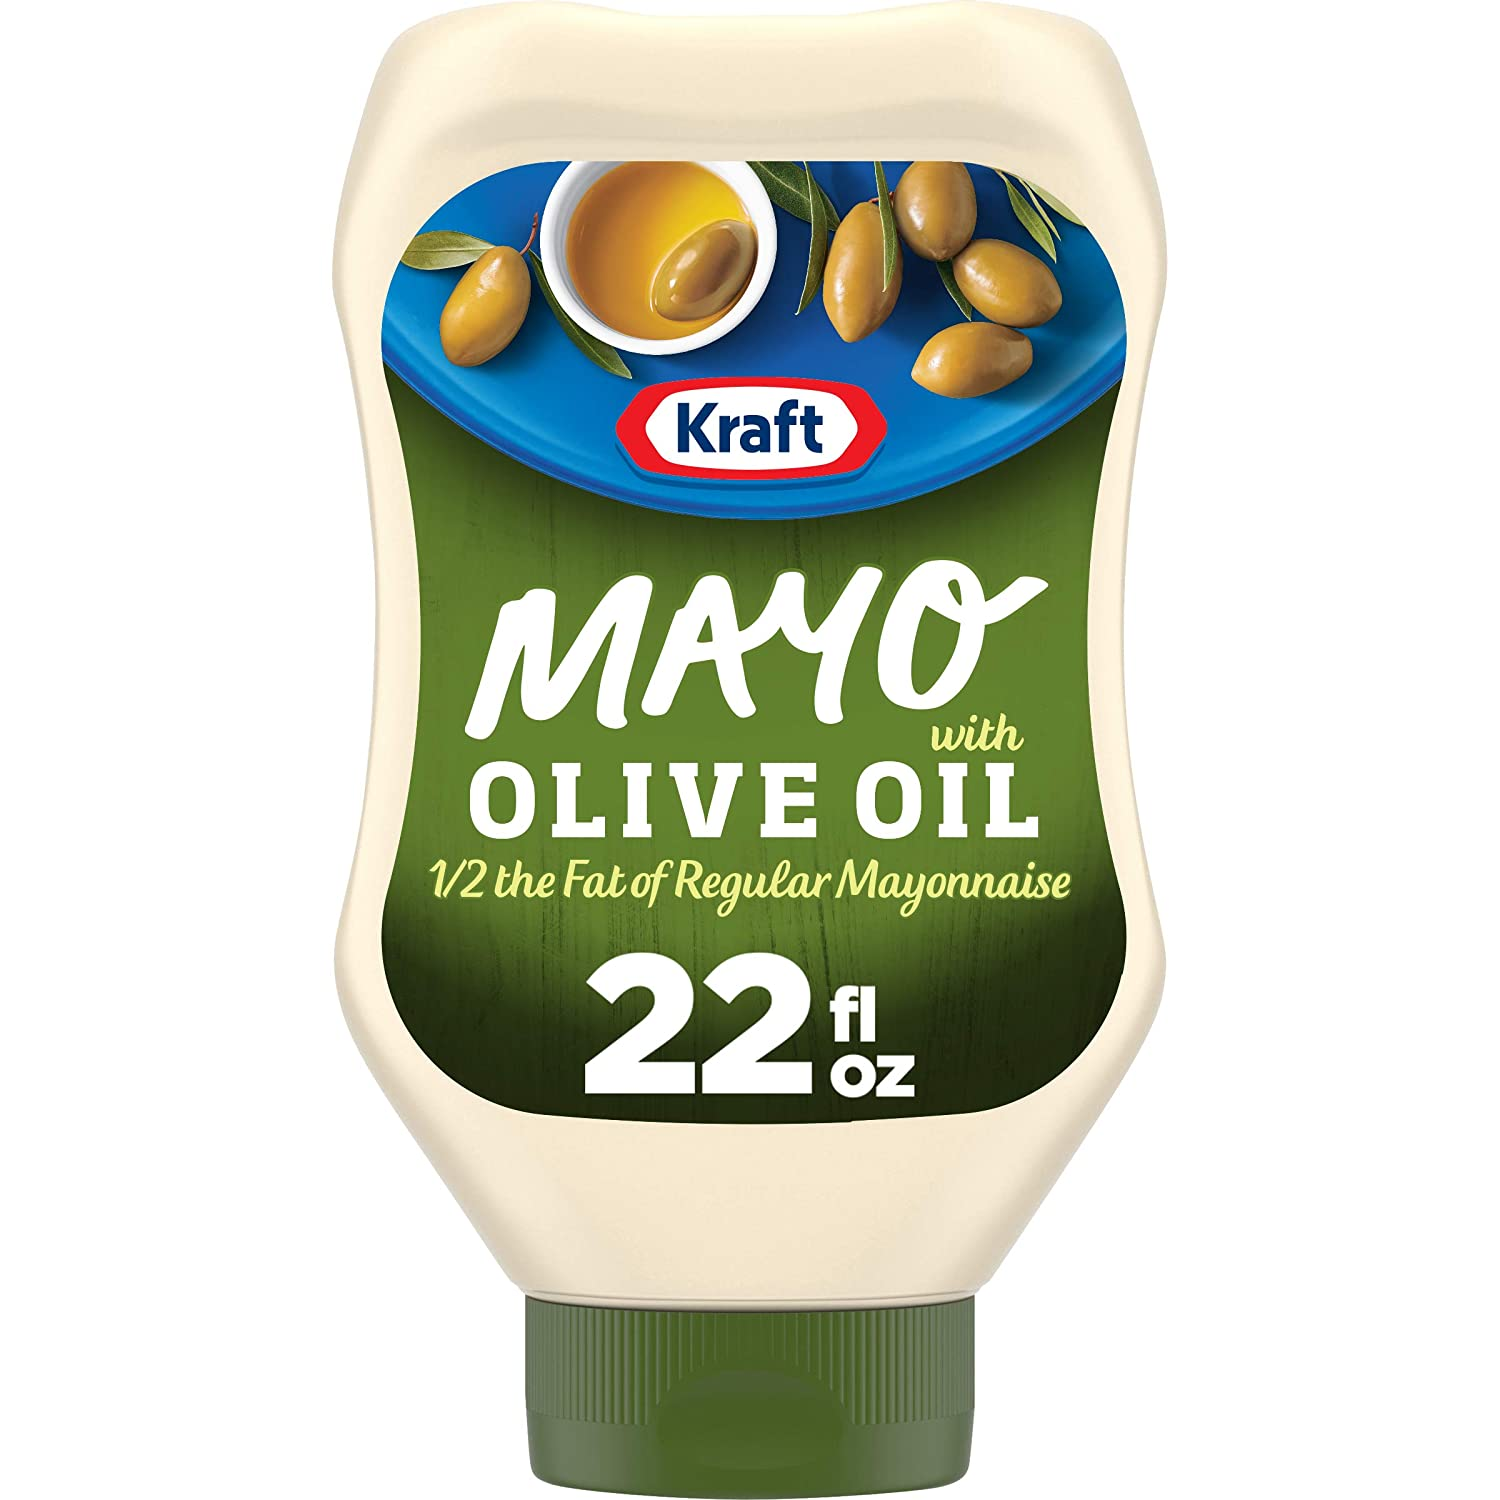 Kraft Mayo Olive Oil Max 59% OFF Reduced Fat Latest item Mayonnaise Pack oz Bottles 22